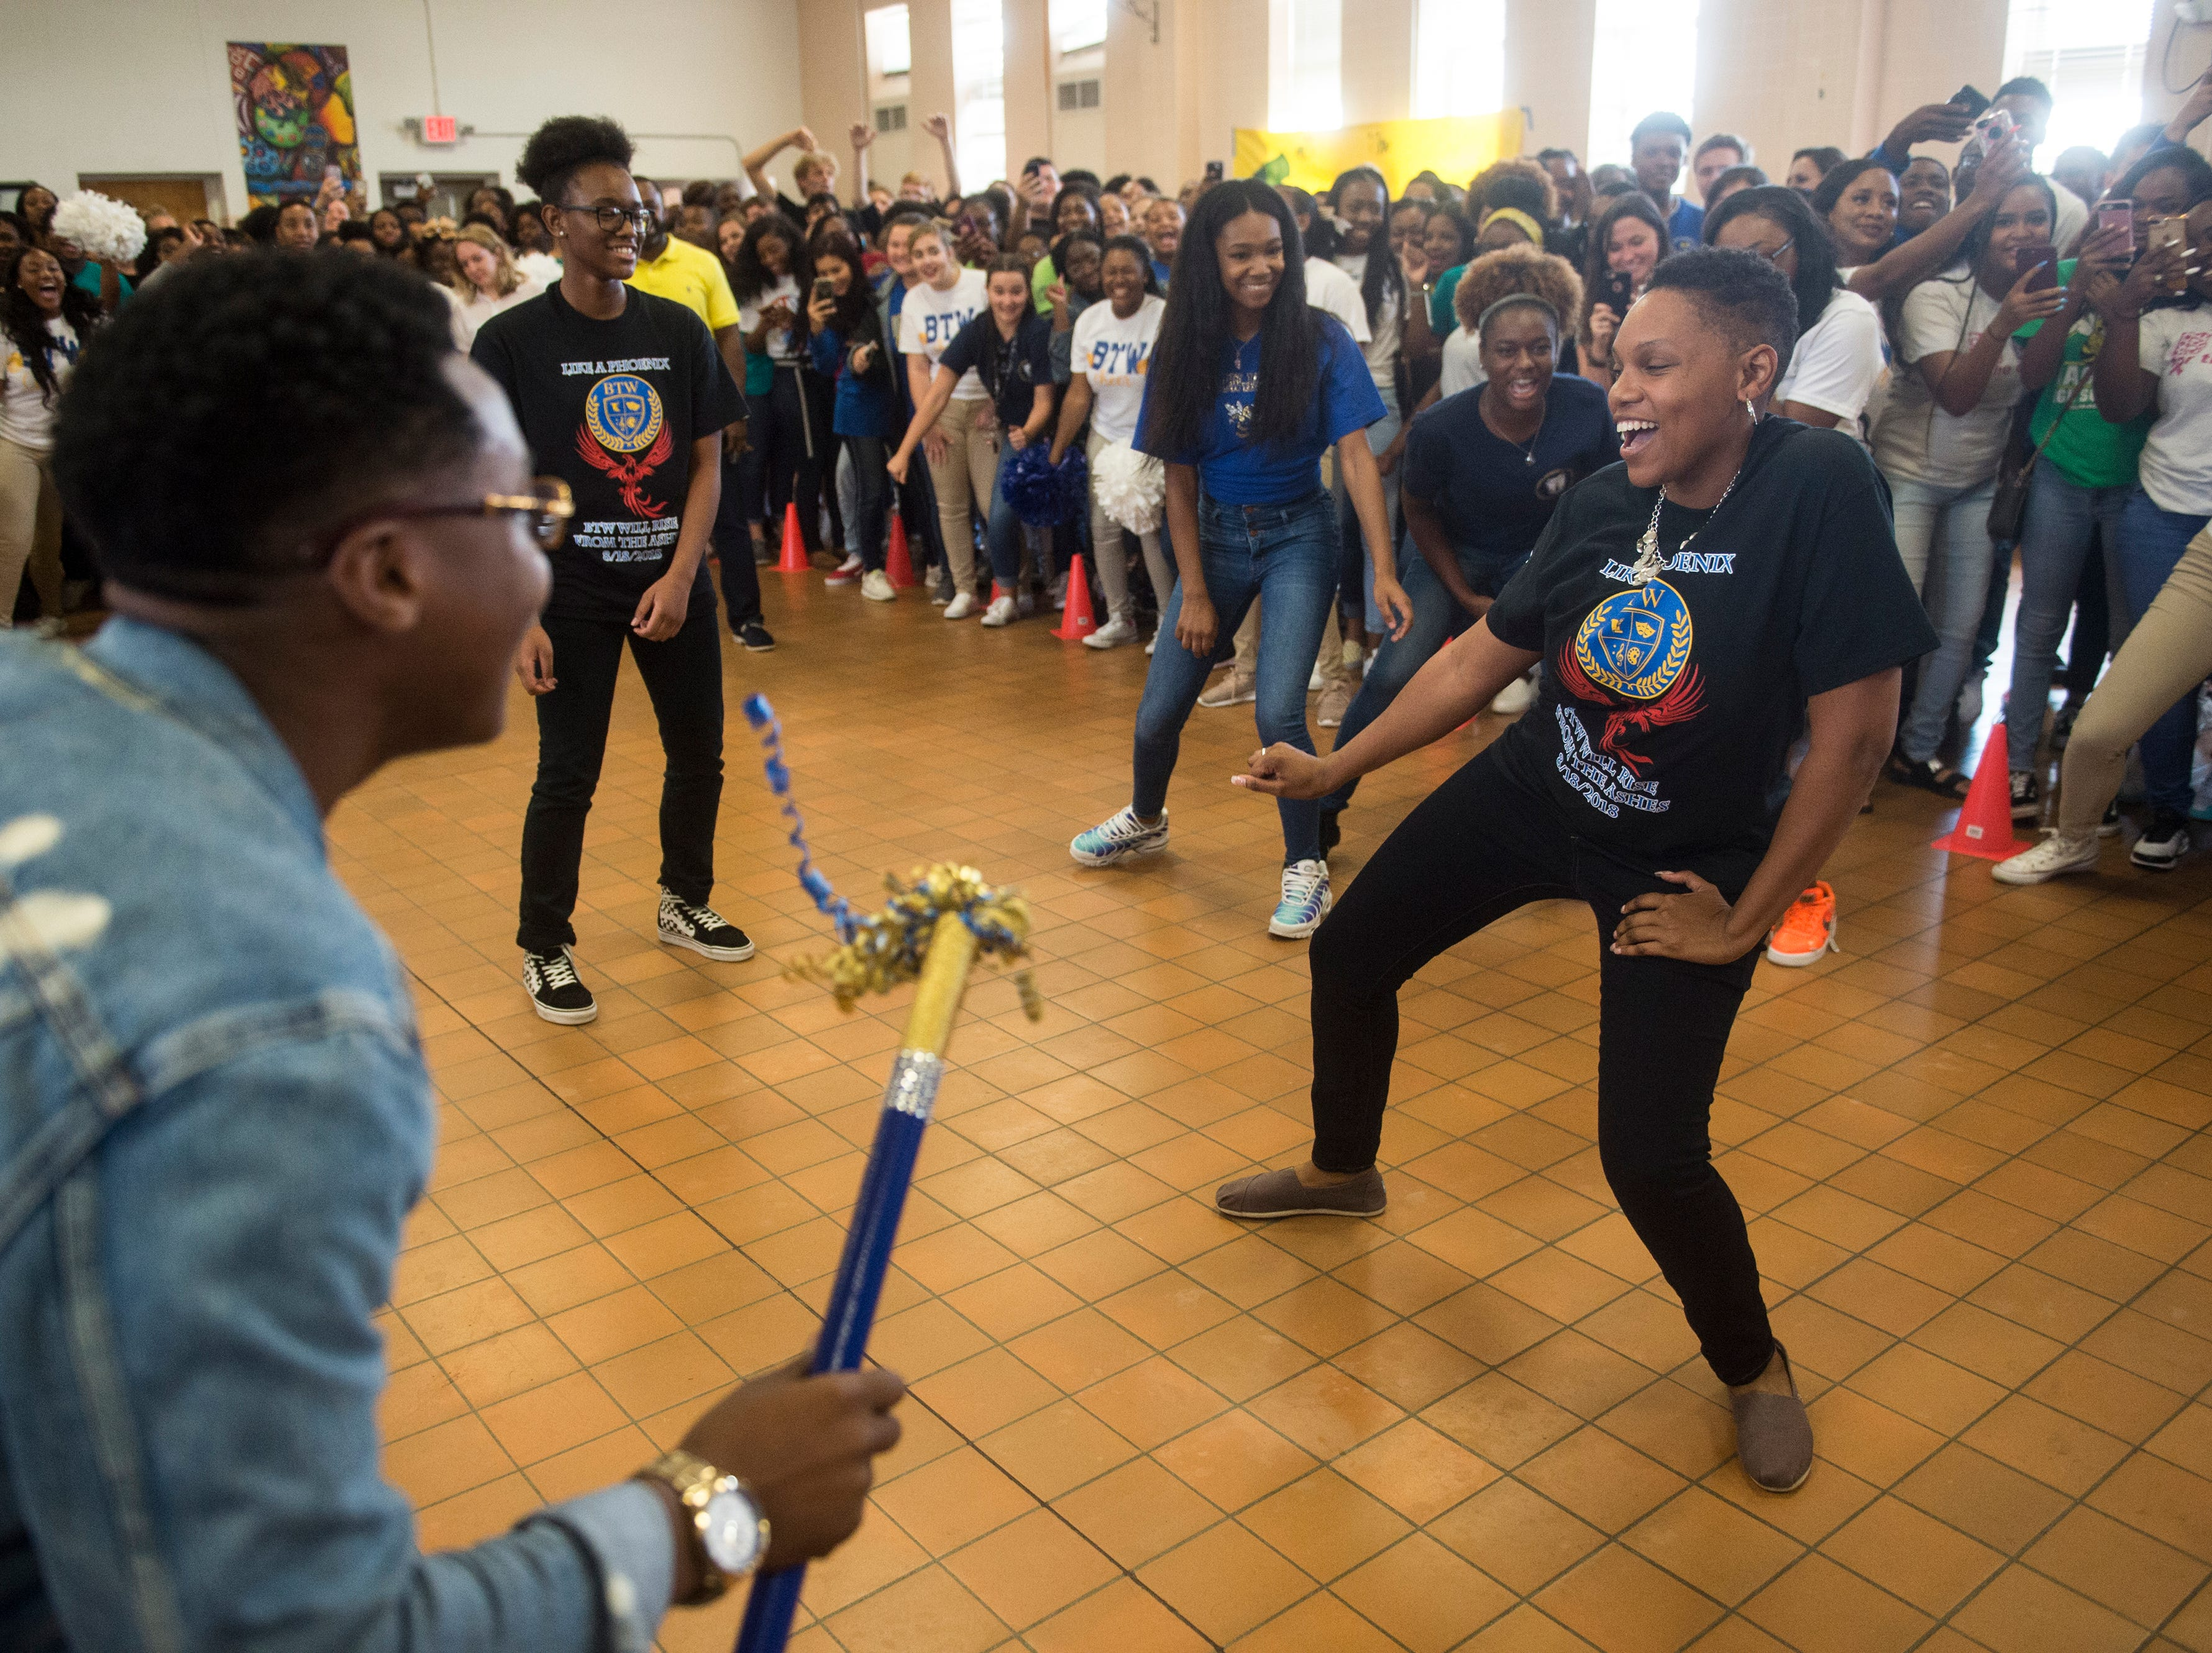 Teacher Nicole Barnett competes in the teacher-student dance off during a pep rally at BTW Magnet School at Hayneville in Montgomery, Ala., on Friday, Aug. 31, 2018.